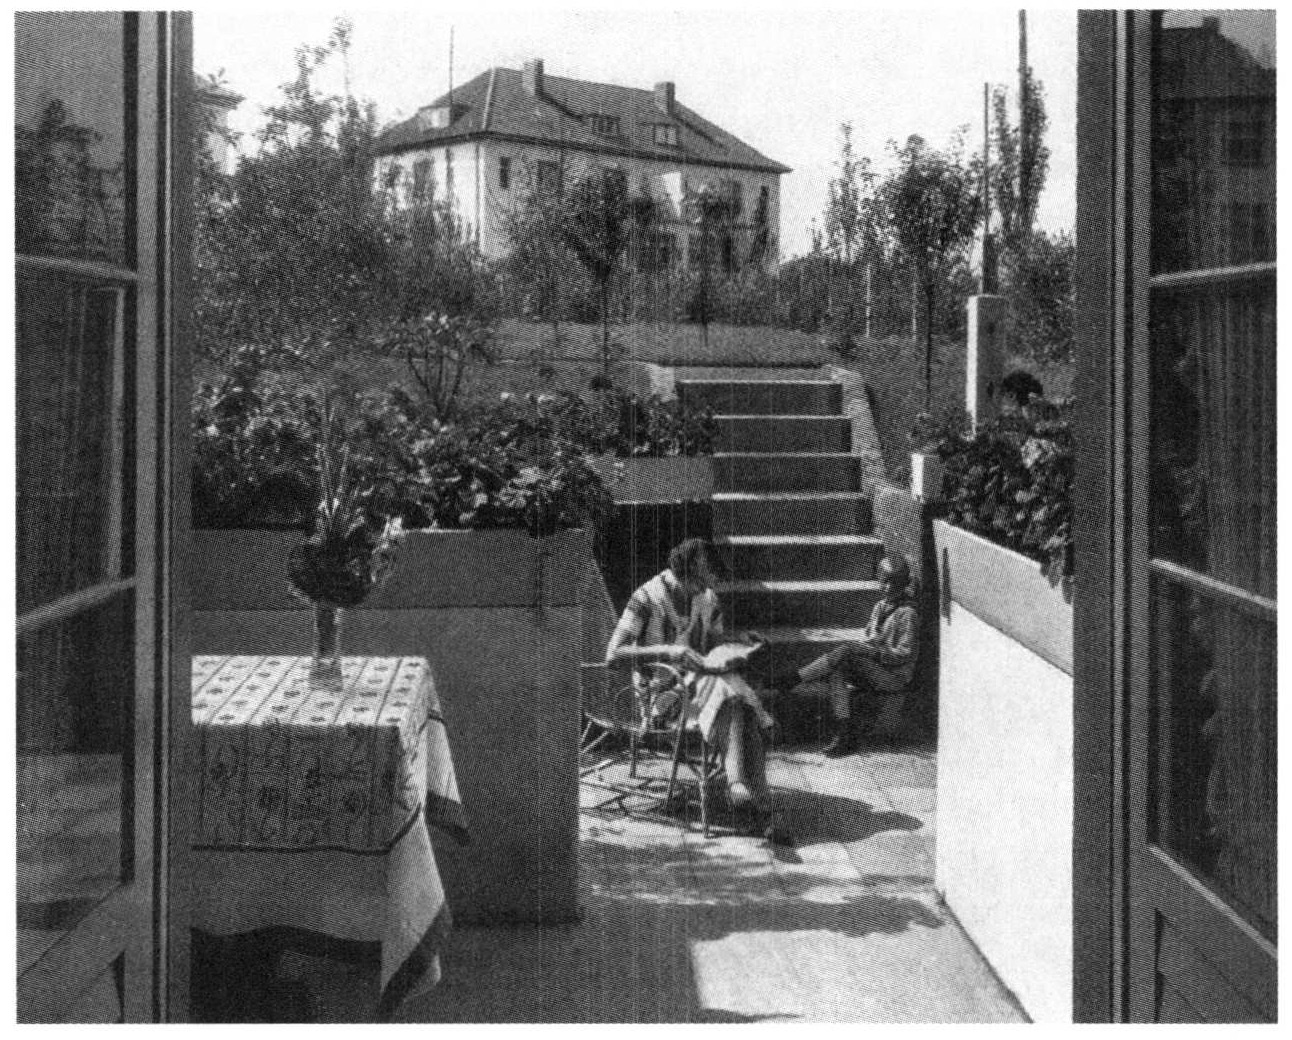 Guerre du toit et modernit architecturale introduction for Jardines walter benjamin